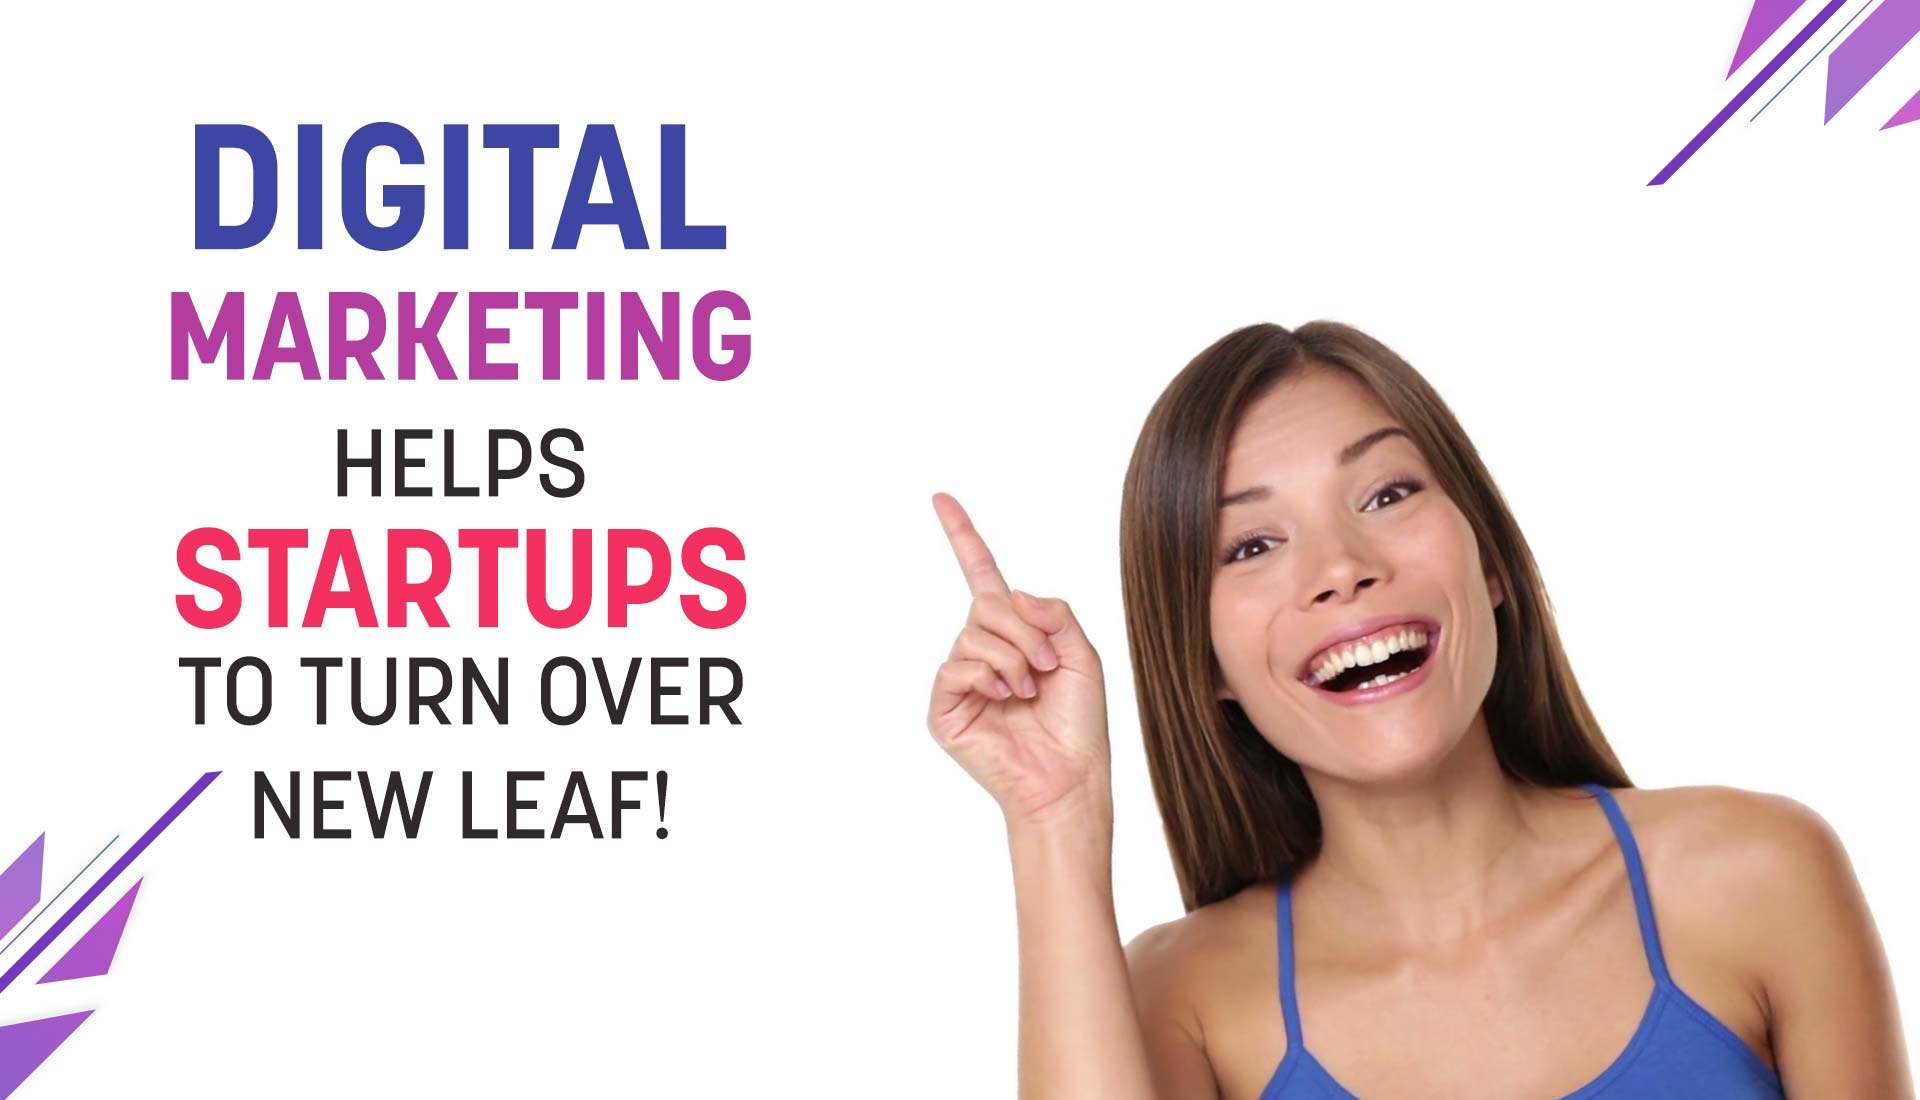 Digital Marketing for startups